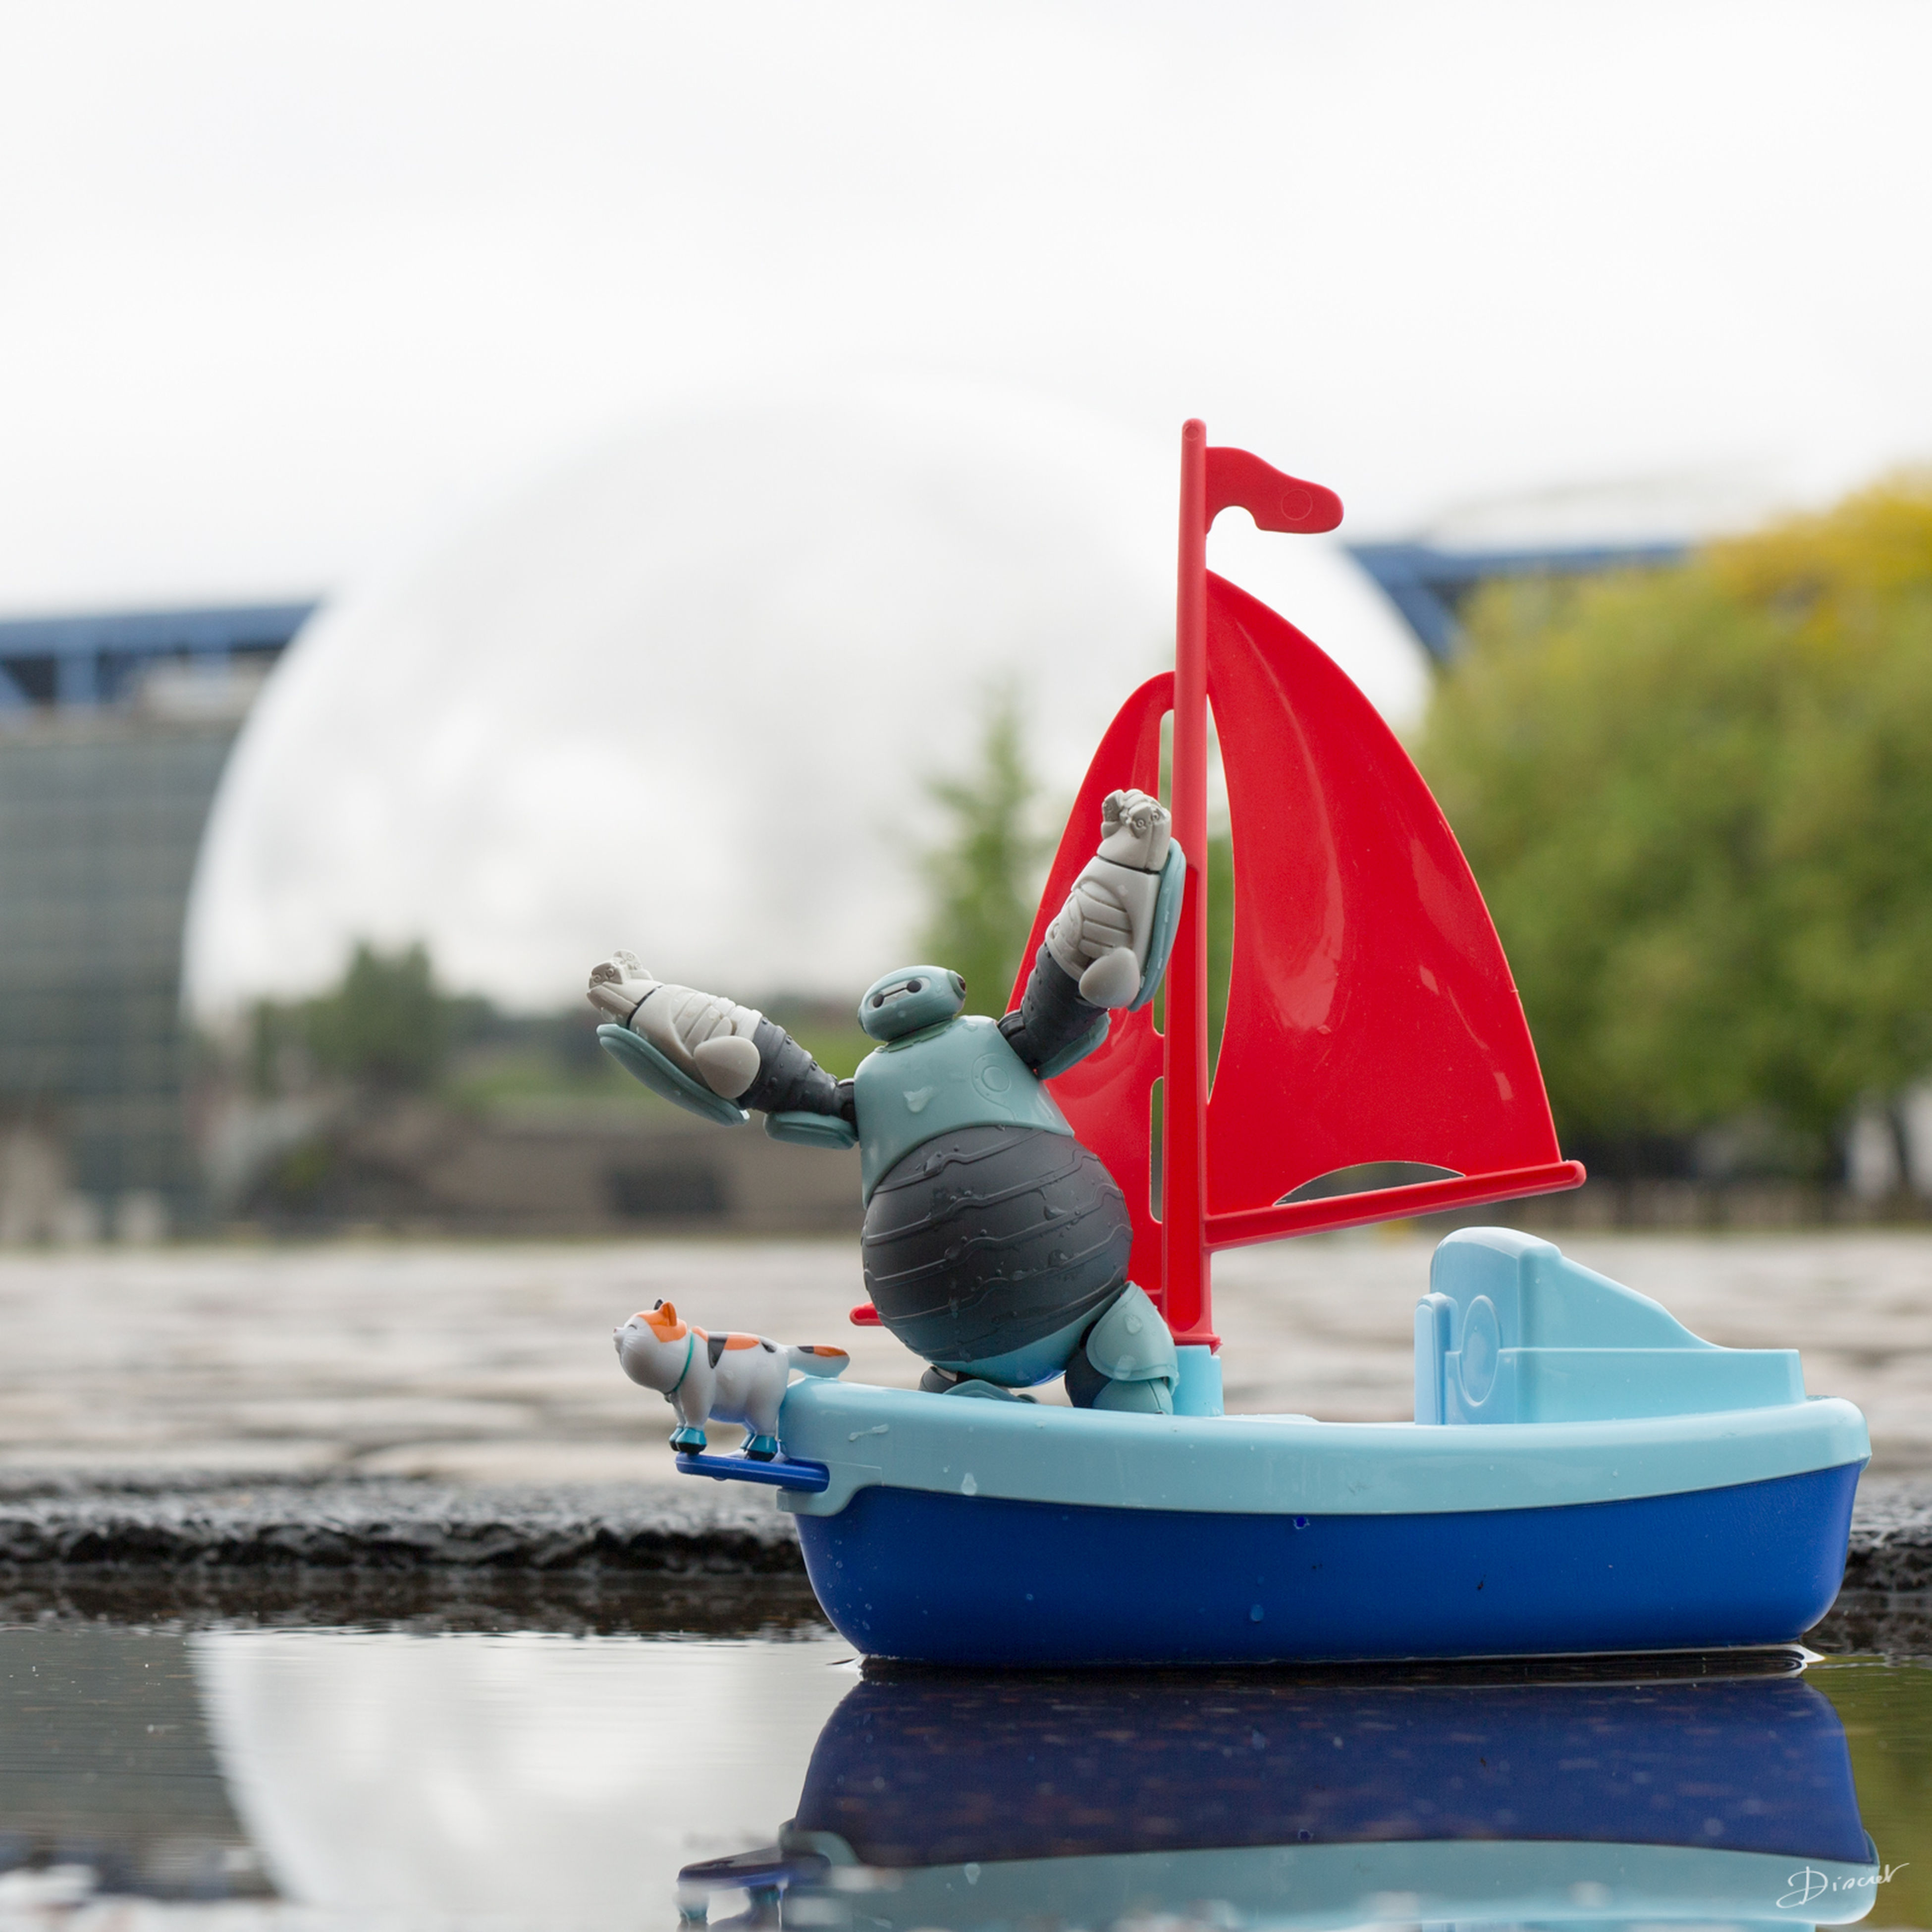 focus on foreground, water, red, transportation, nautical vessel, rear view, river, mode of transport, day, boat, close-up, incidental people, outdoors, men, travel, selective focus, lifestyles, holding